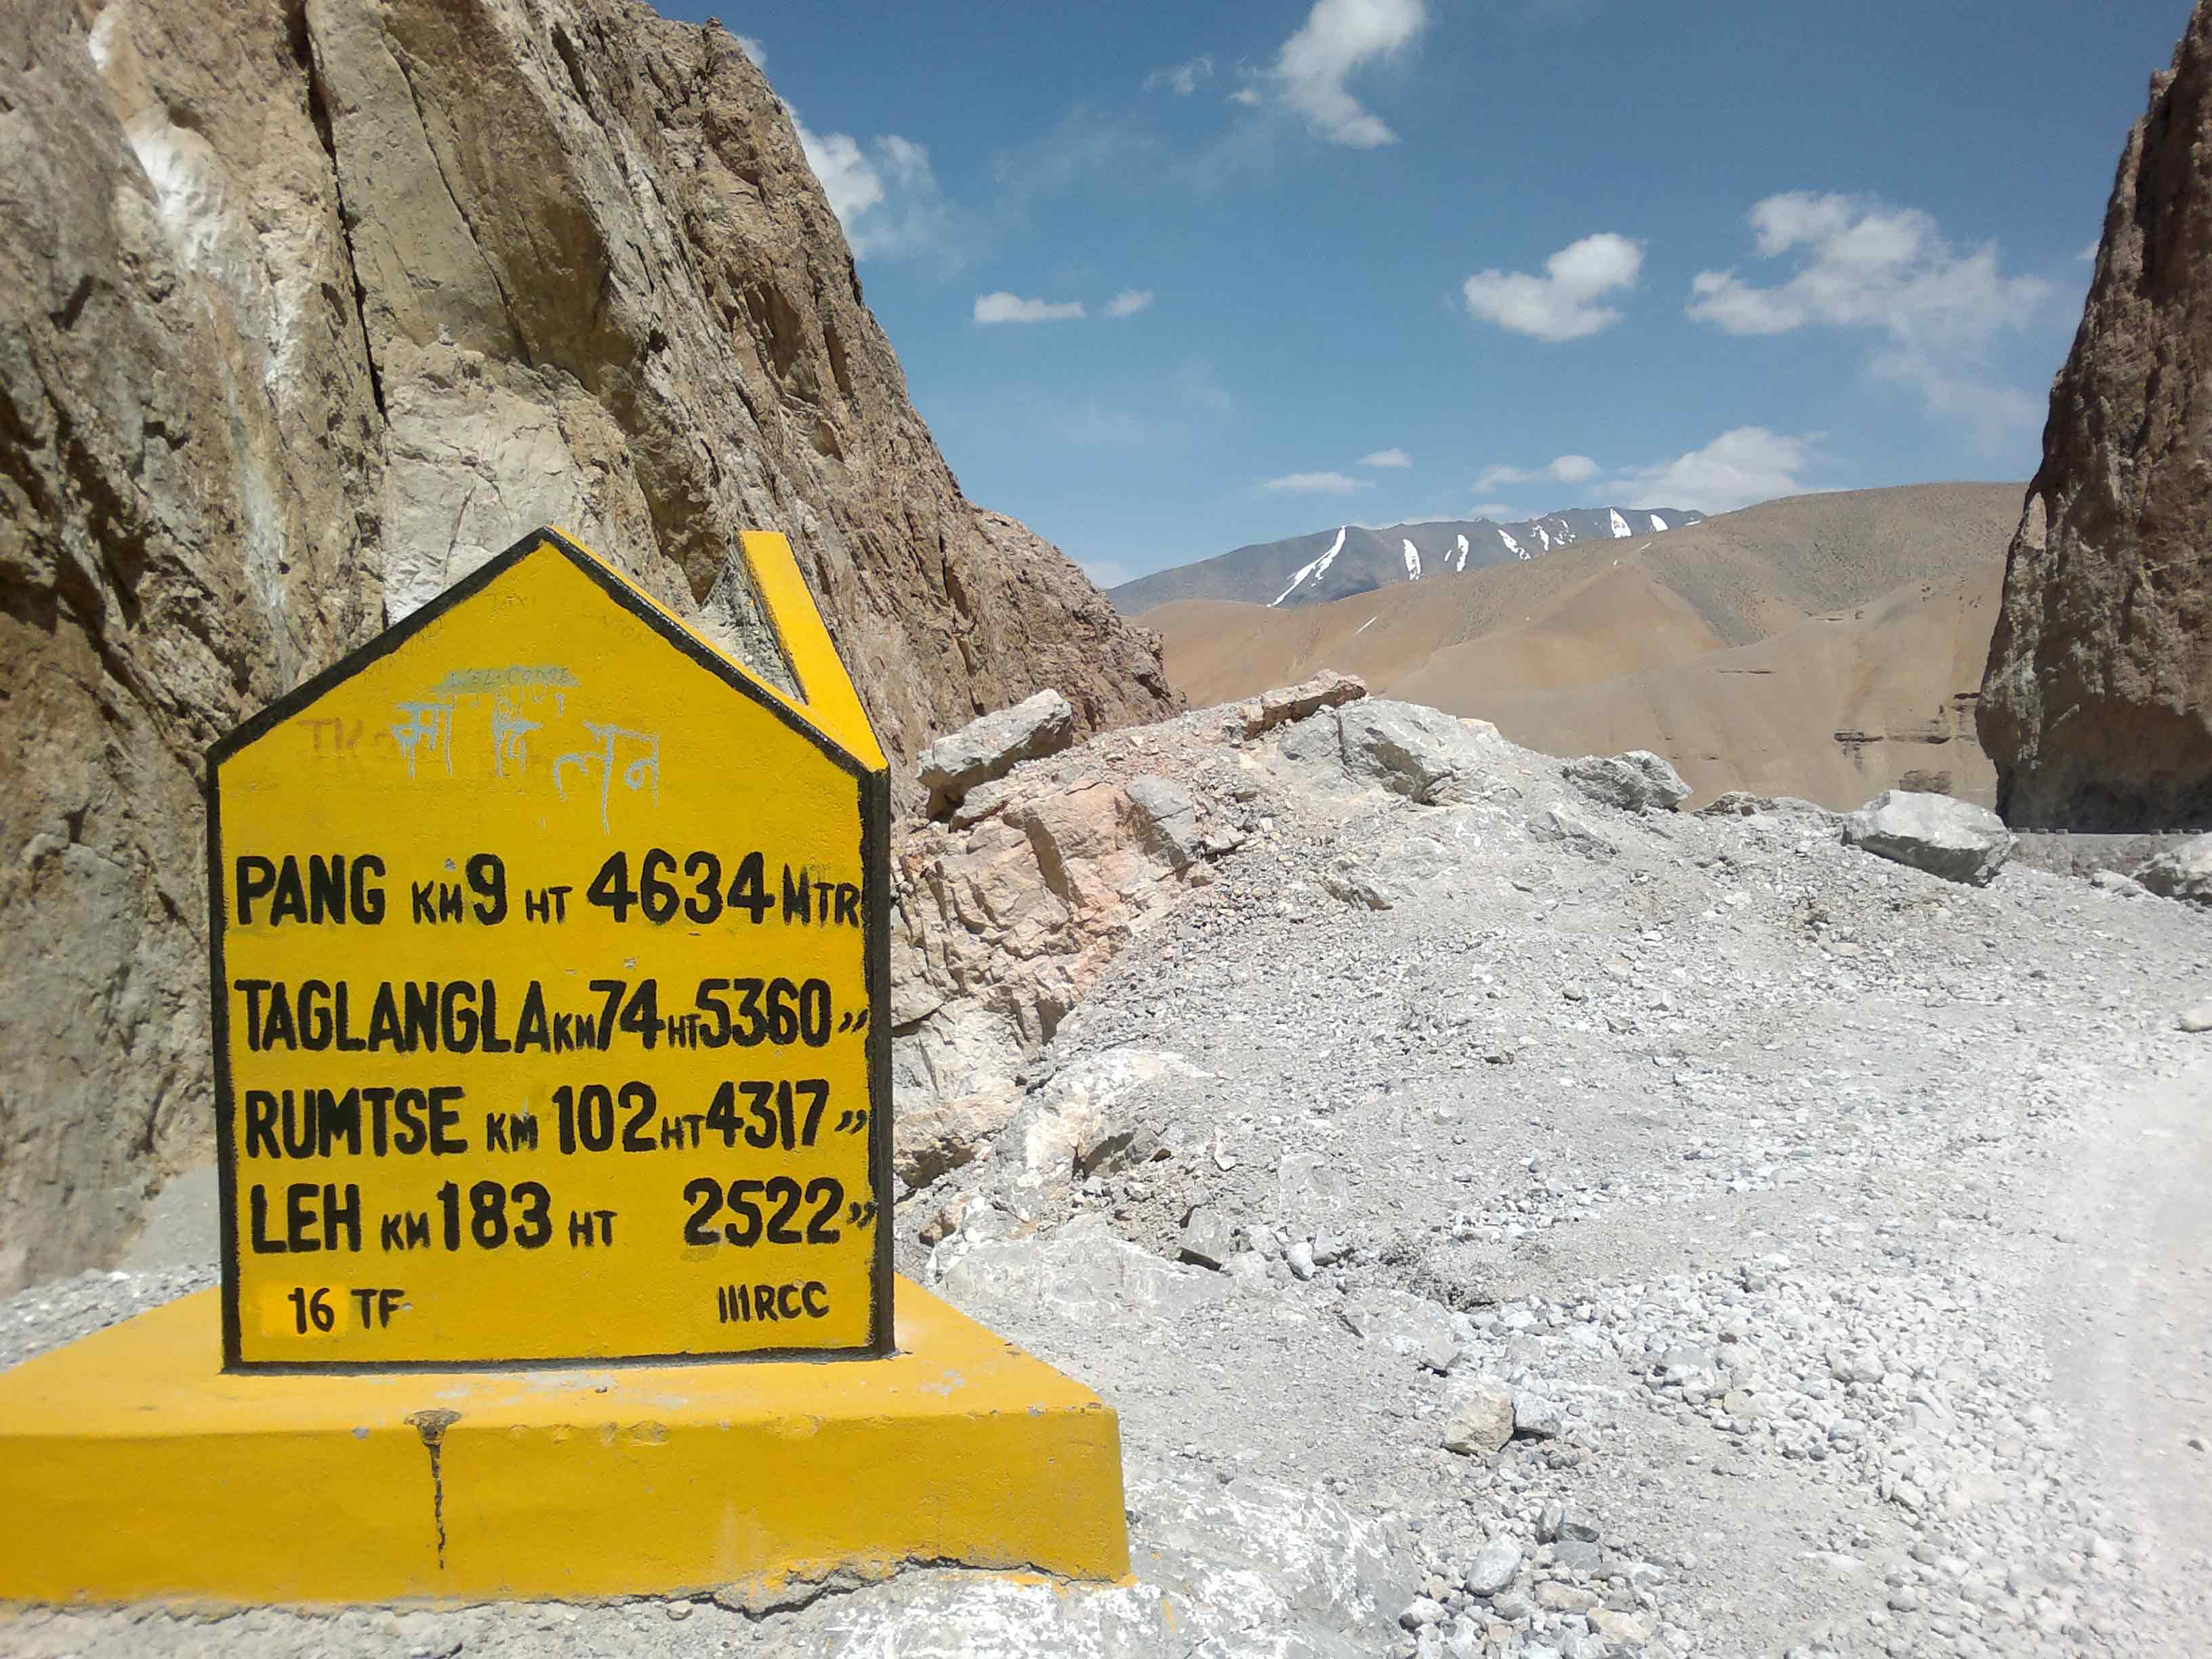 Signboard made by BRO on Manali-Leh Highway, Roadtrip to Leh-Ladakh with Heaven Riders India